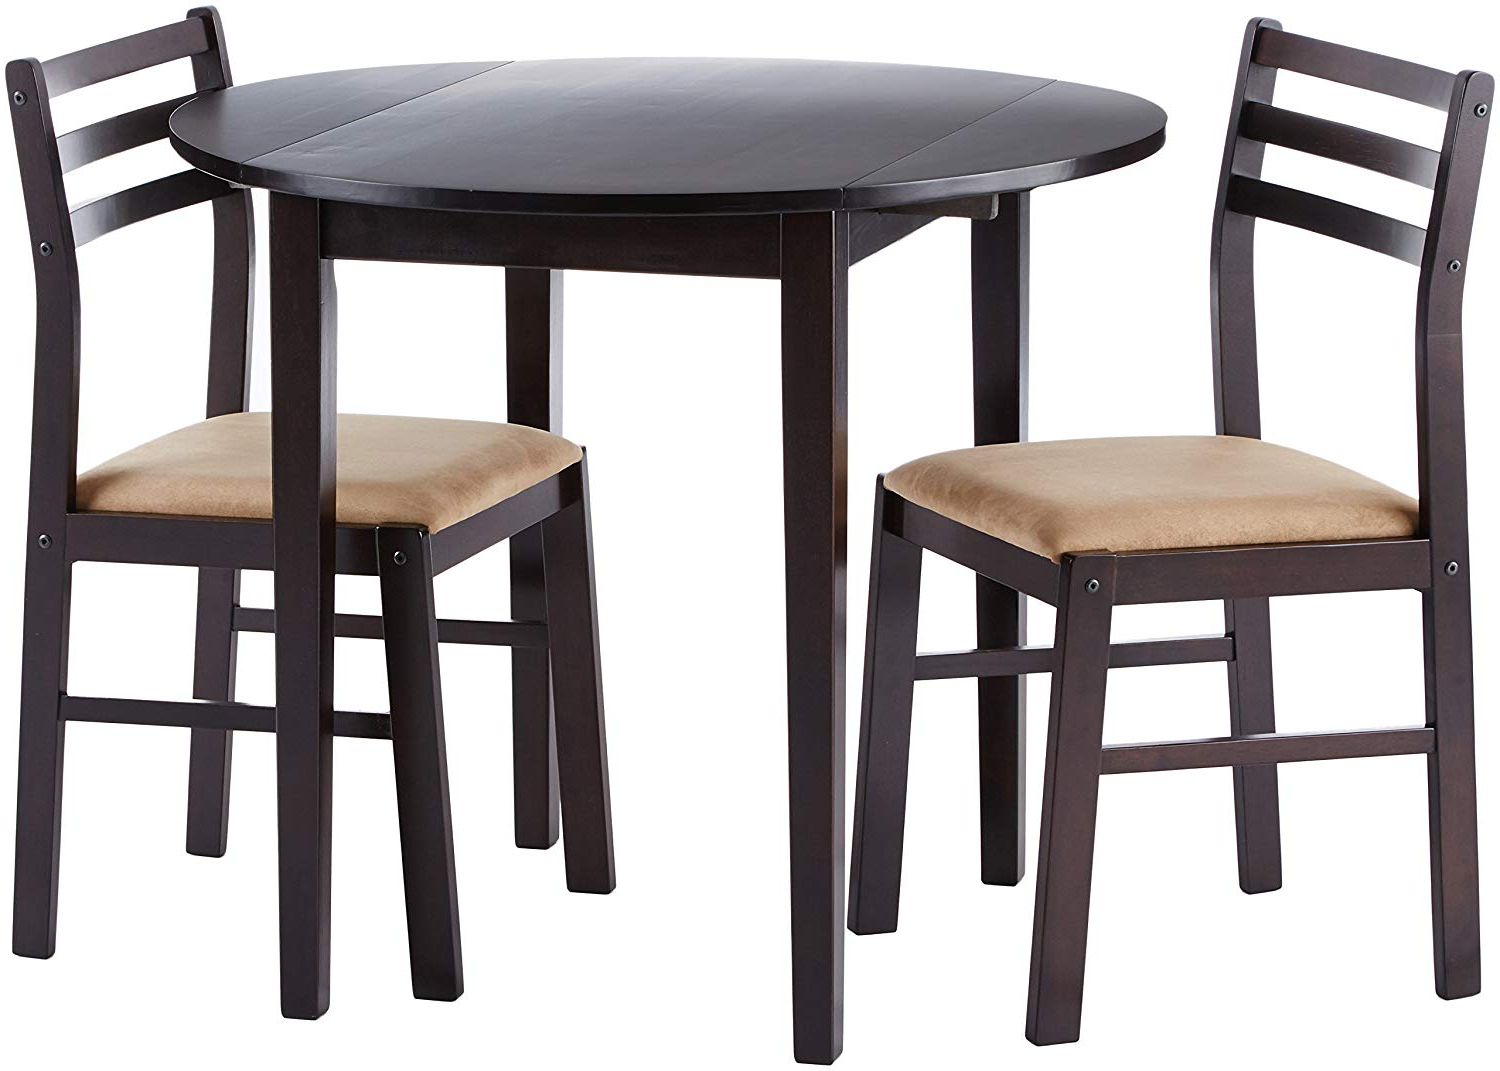 Most Recent Amazon – Coaster Home Furnishings 3 Piece Dining Set With Drop With Baillie 3 Piece Dining Sets (View 7 of 25)